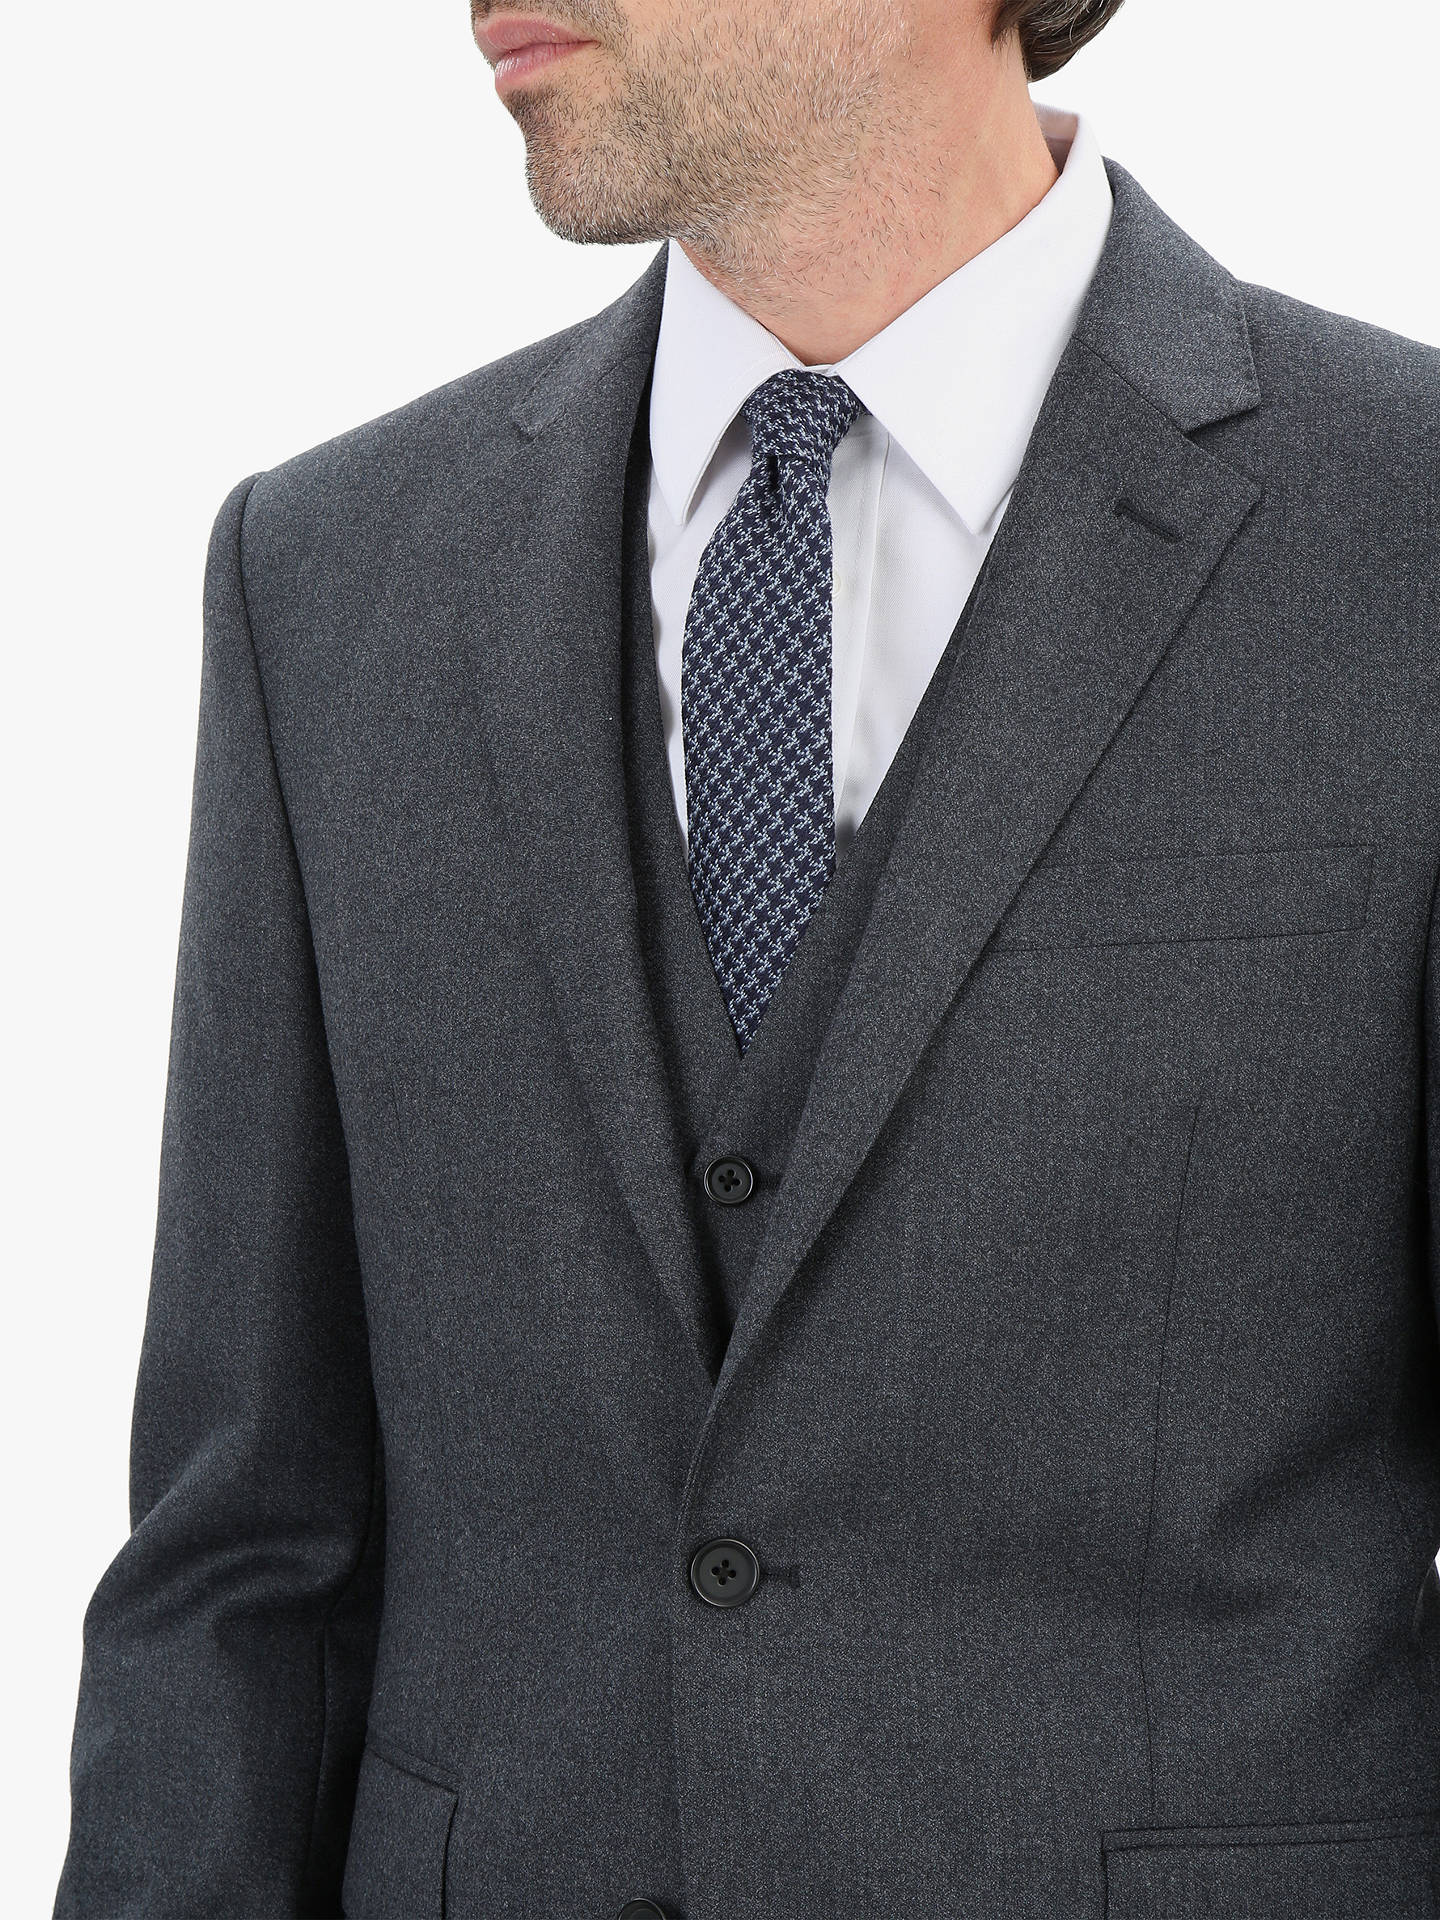 Buy Jaeger Flannel Regular Fit Jacket, Charcoal, 44S Online at johnlewis.com